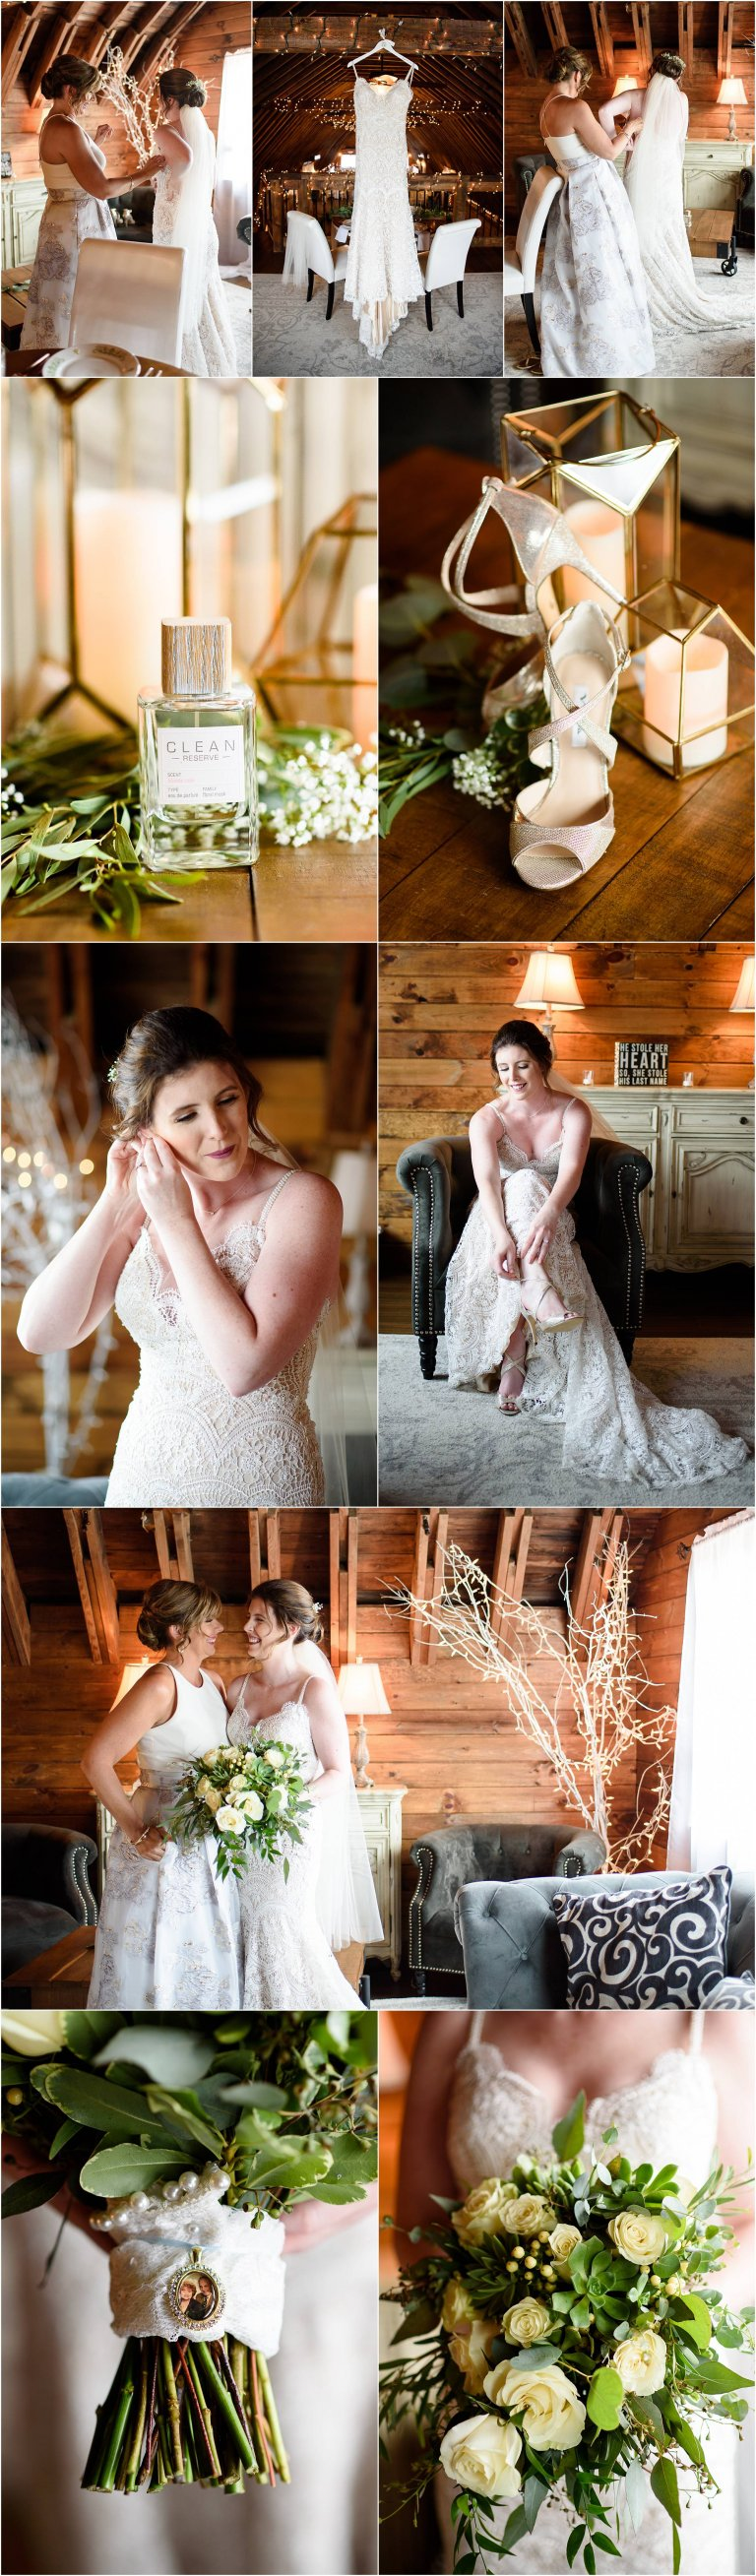 PA barn wedding venue photographer Crystal Satriano captures images of the bride getting ready